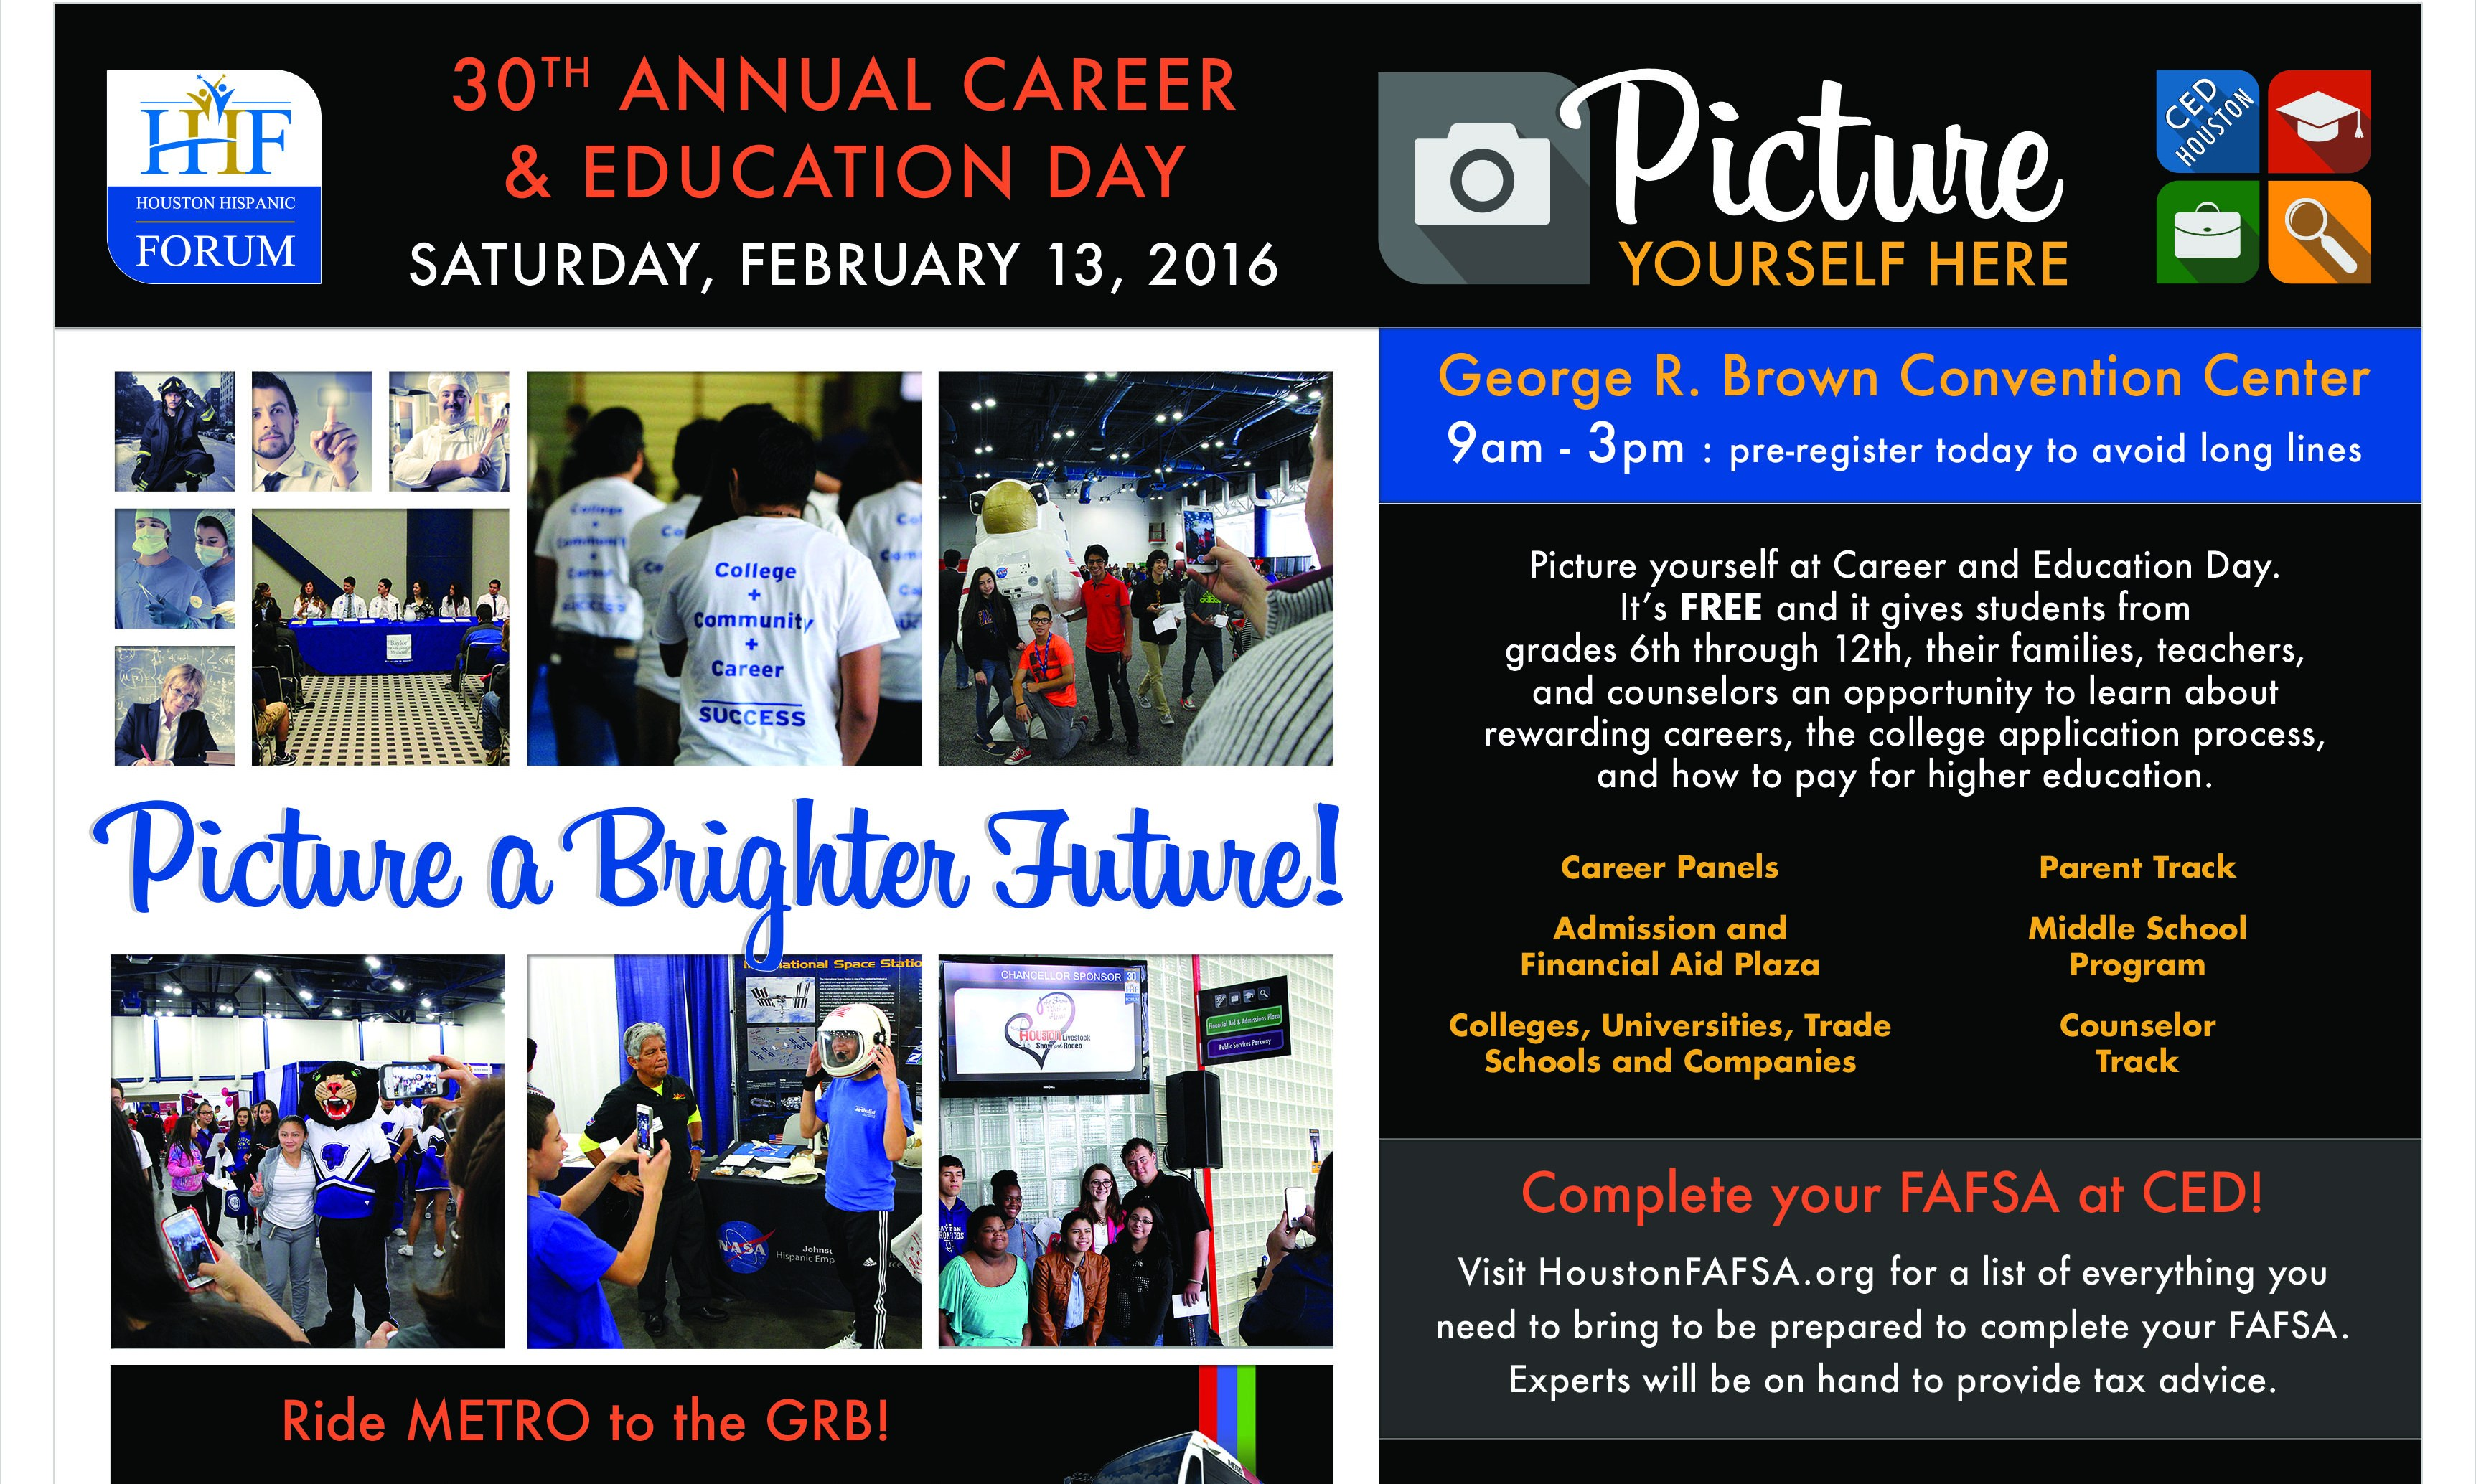 30th Annual Career & Education Day